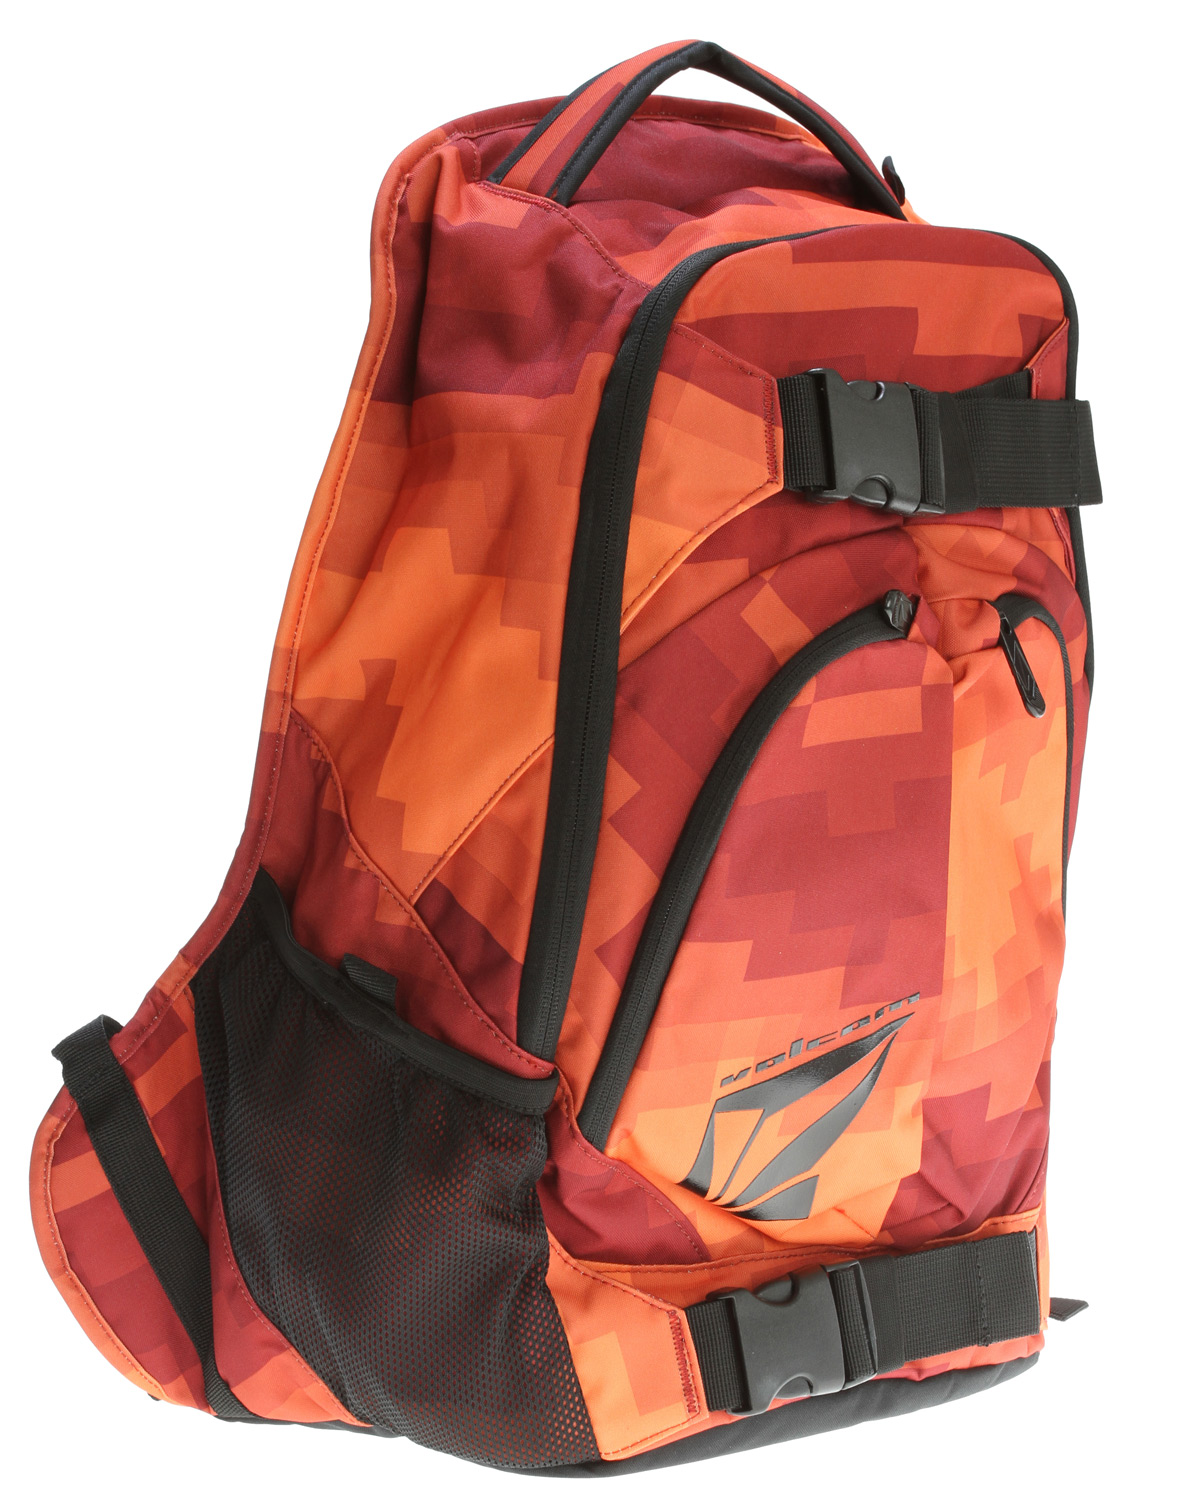 "Surf Key Features of the Volcom Equilibrium Stoneage Backpack: Volume: 1891in [31L] Dimensions: 19.75 x 13 x 7.75"" [50 x 33 x 20cm] Weight: 1.5lb [0.66kg] Three compartment backpack with 'Volcom/Stone' gel prints 300D polyester - $33.95"